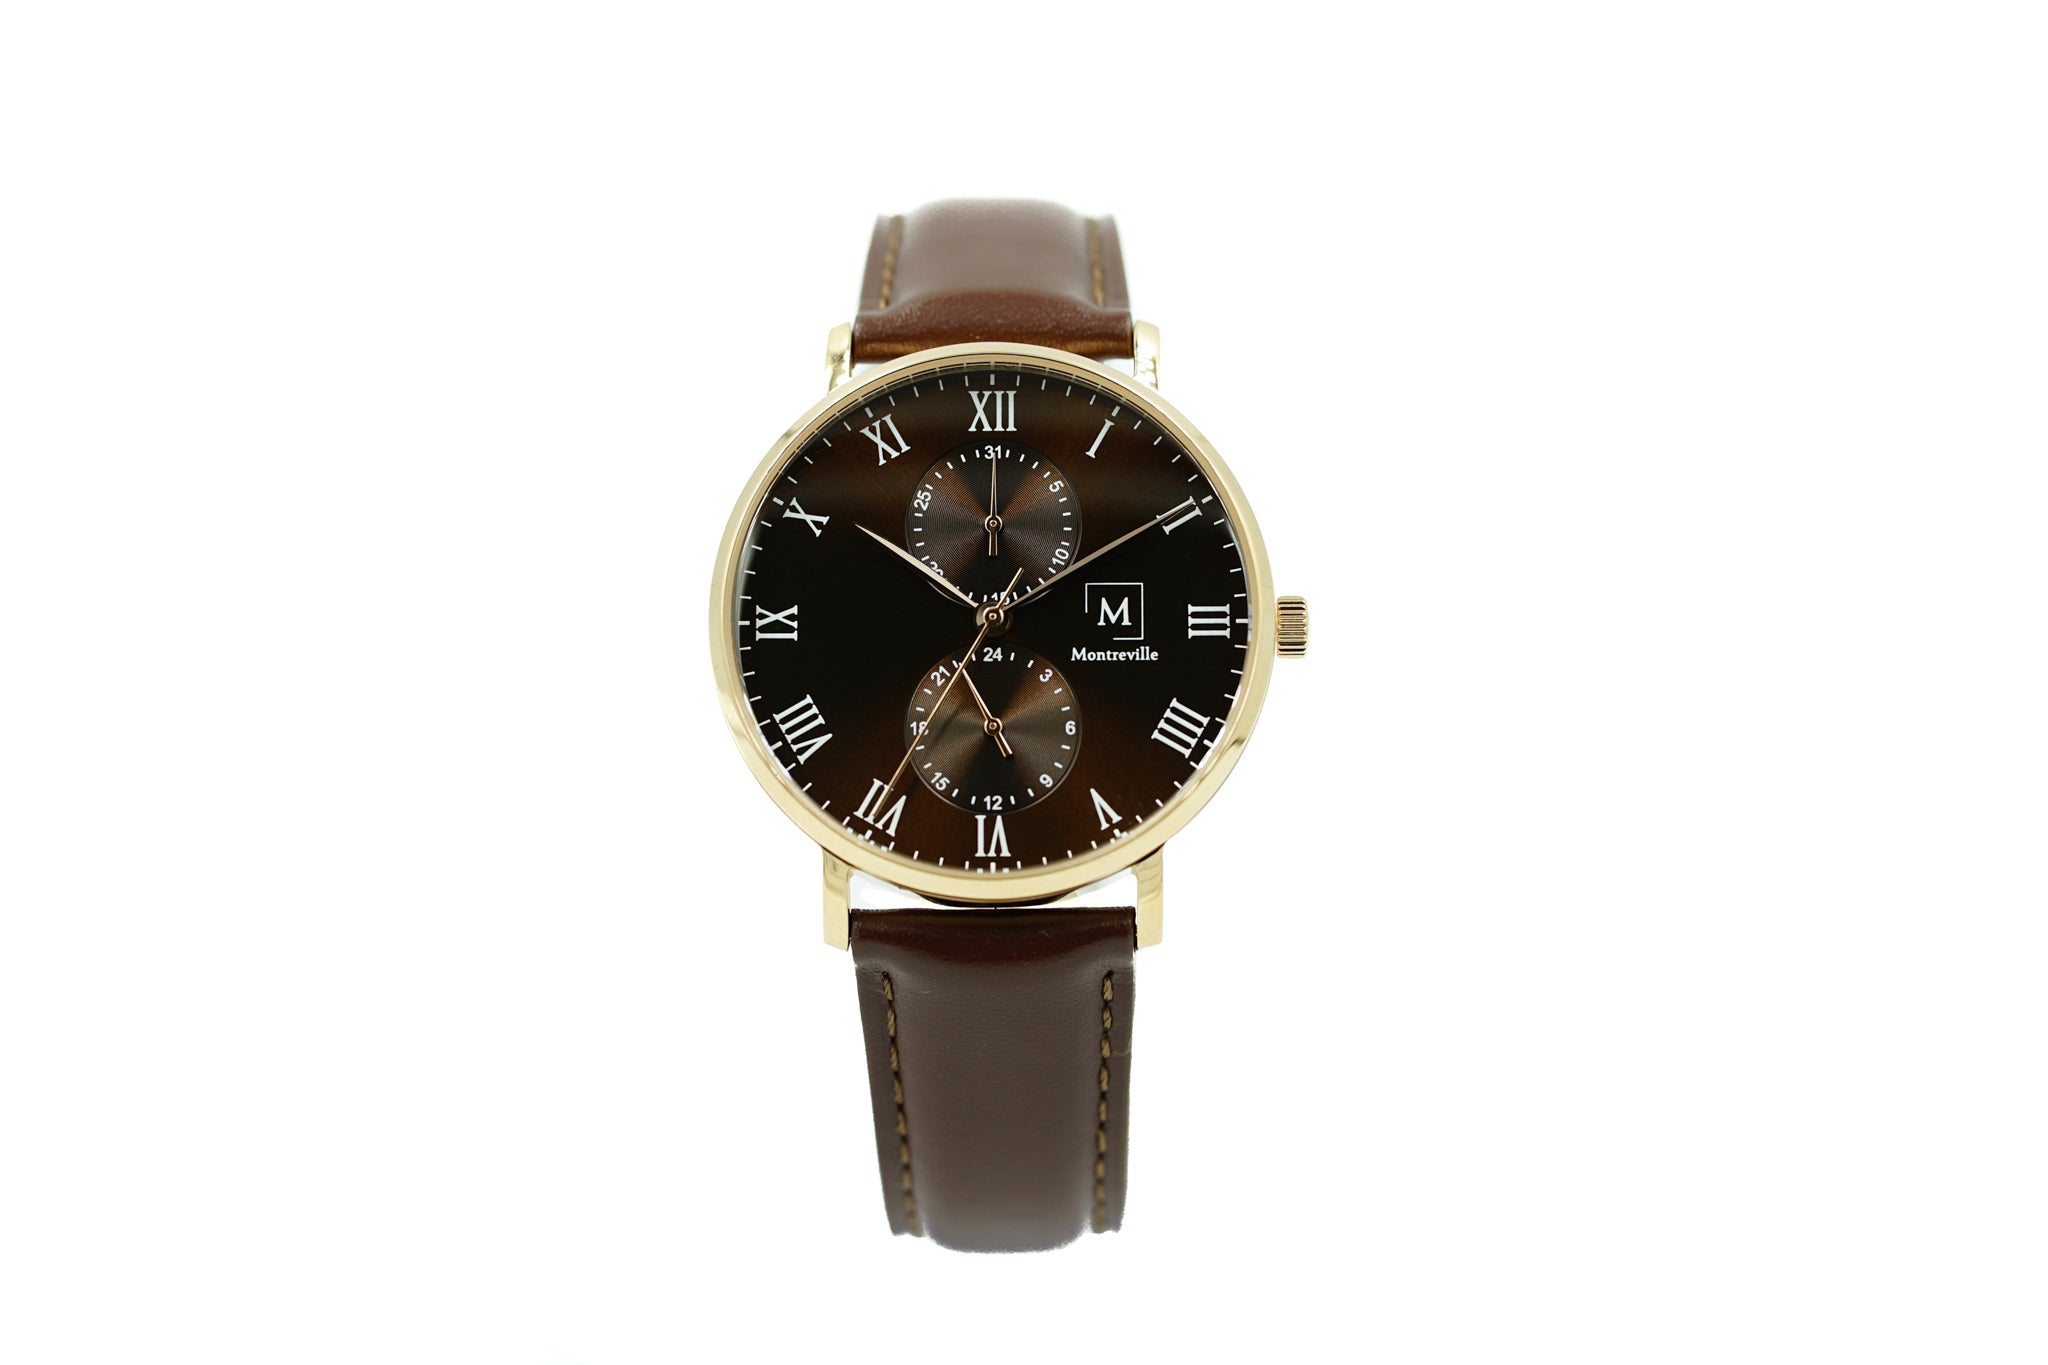 Brown watch called Oslo from the brand Montreville. This is an image of the watch with a white background. The timepiece has an elegant design with minimalistic lay-out. It has roman numerals in white and a dark brown leather strap. The case is in rosé gold.